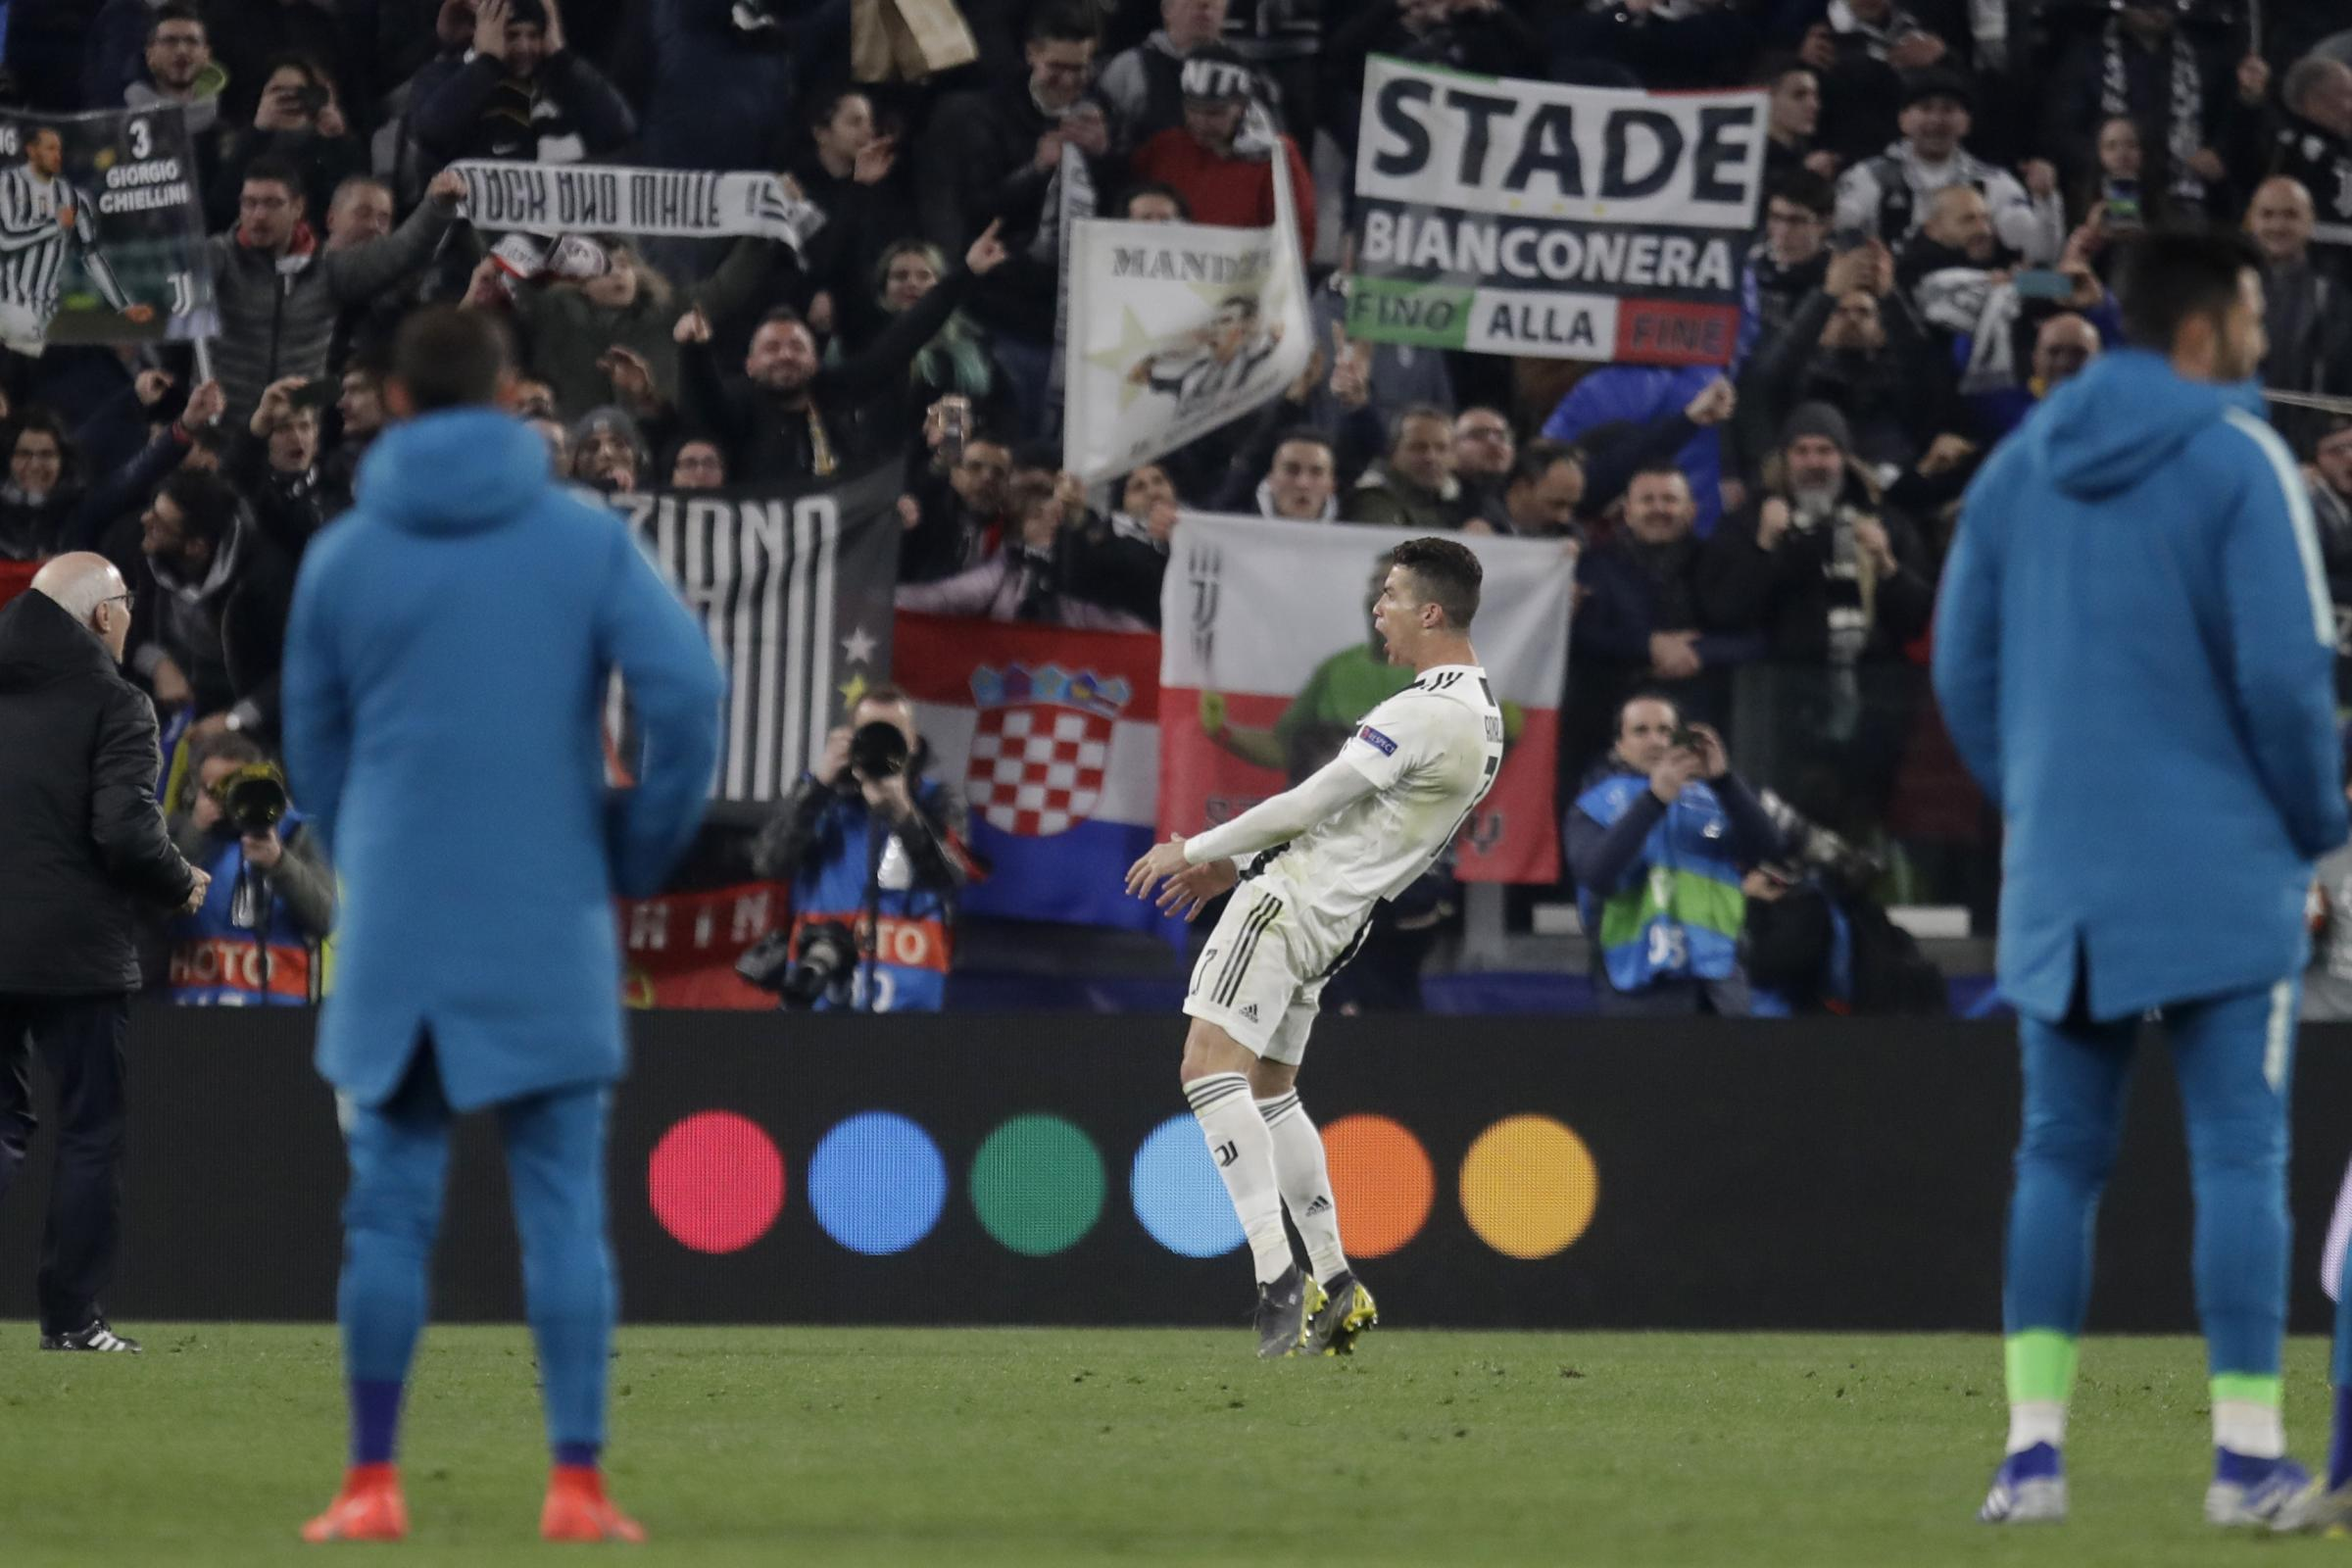 Cristiano Ronaldo had celebrated in front of the Atletico Madrid fans.